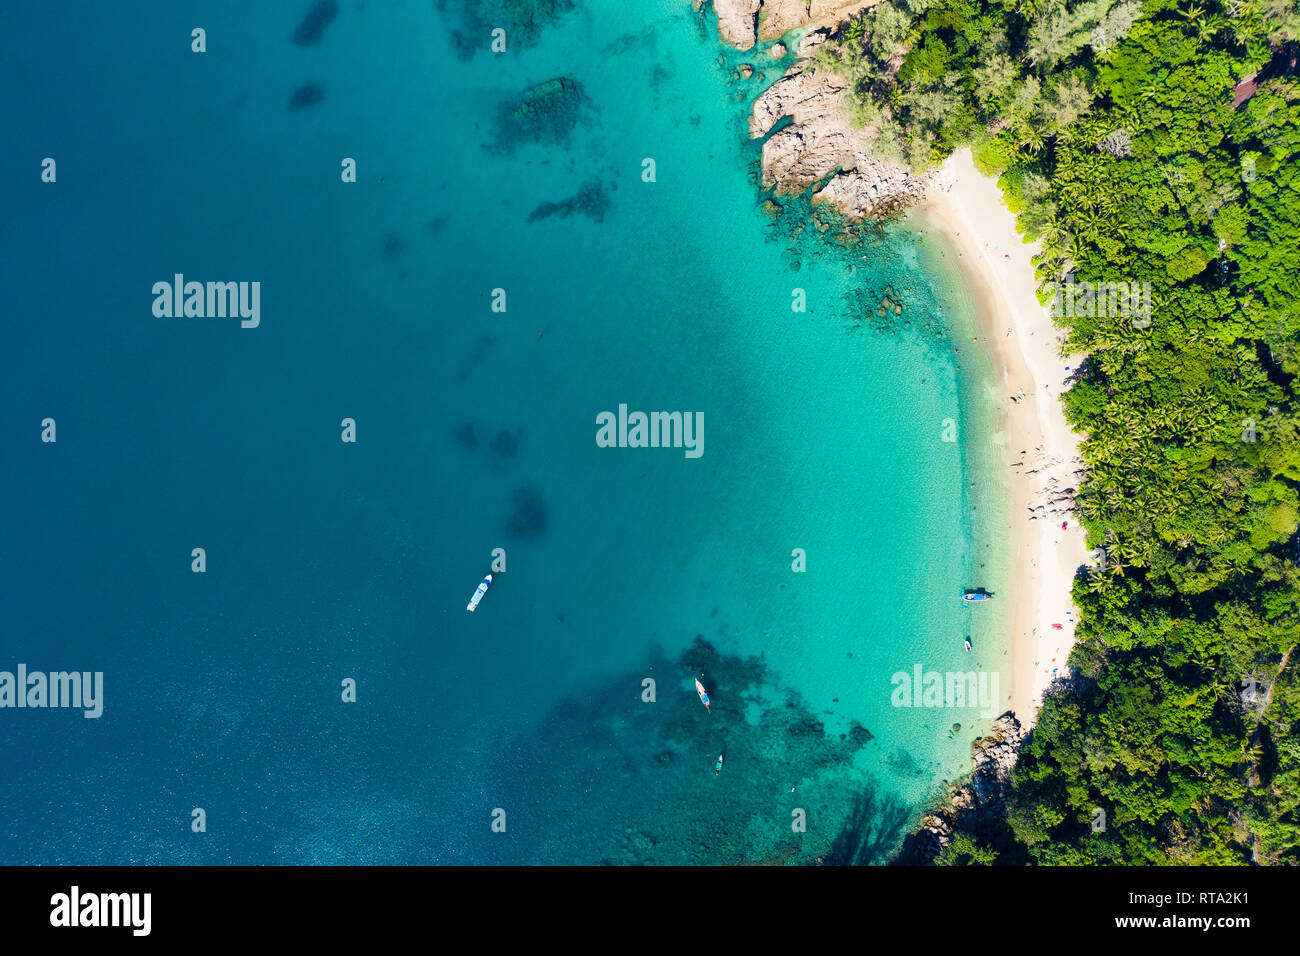 View from above, aerial view of a beautiful tropical beach with white sand and turquoise clear water, Banana beach, Phuket, Thailand. Stock Photo